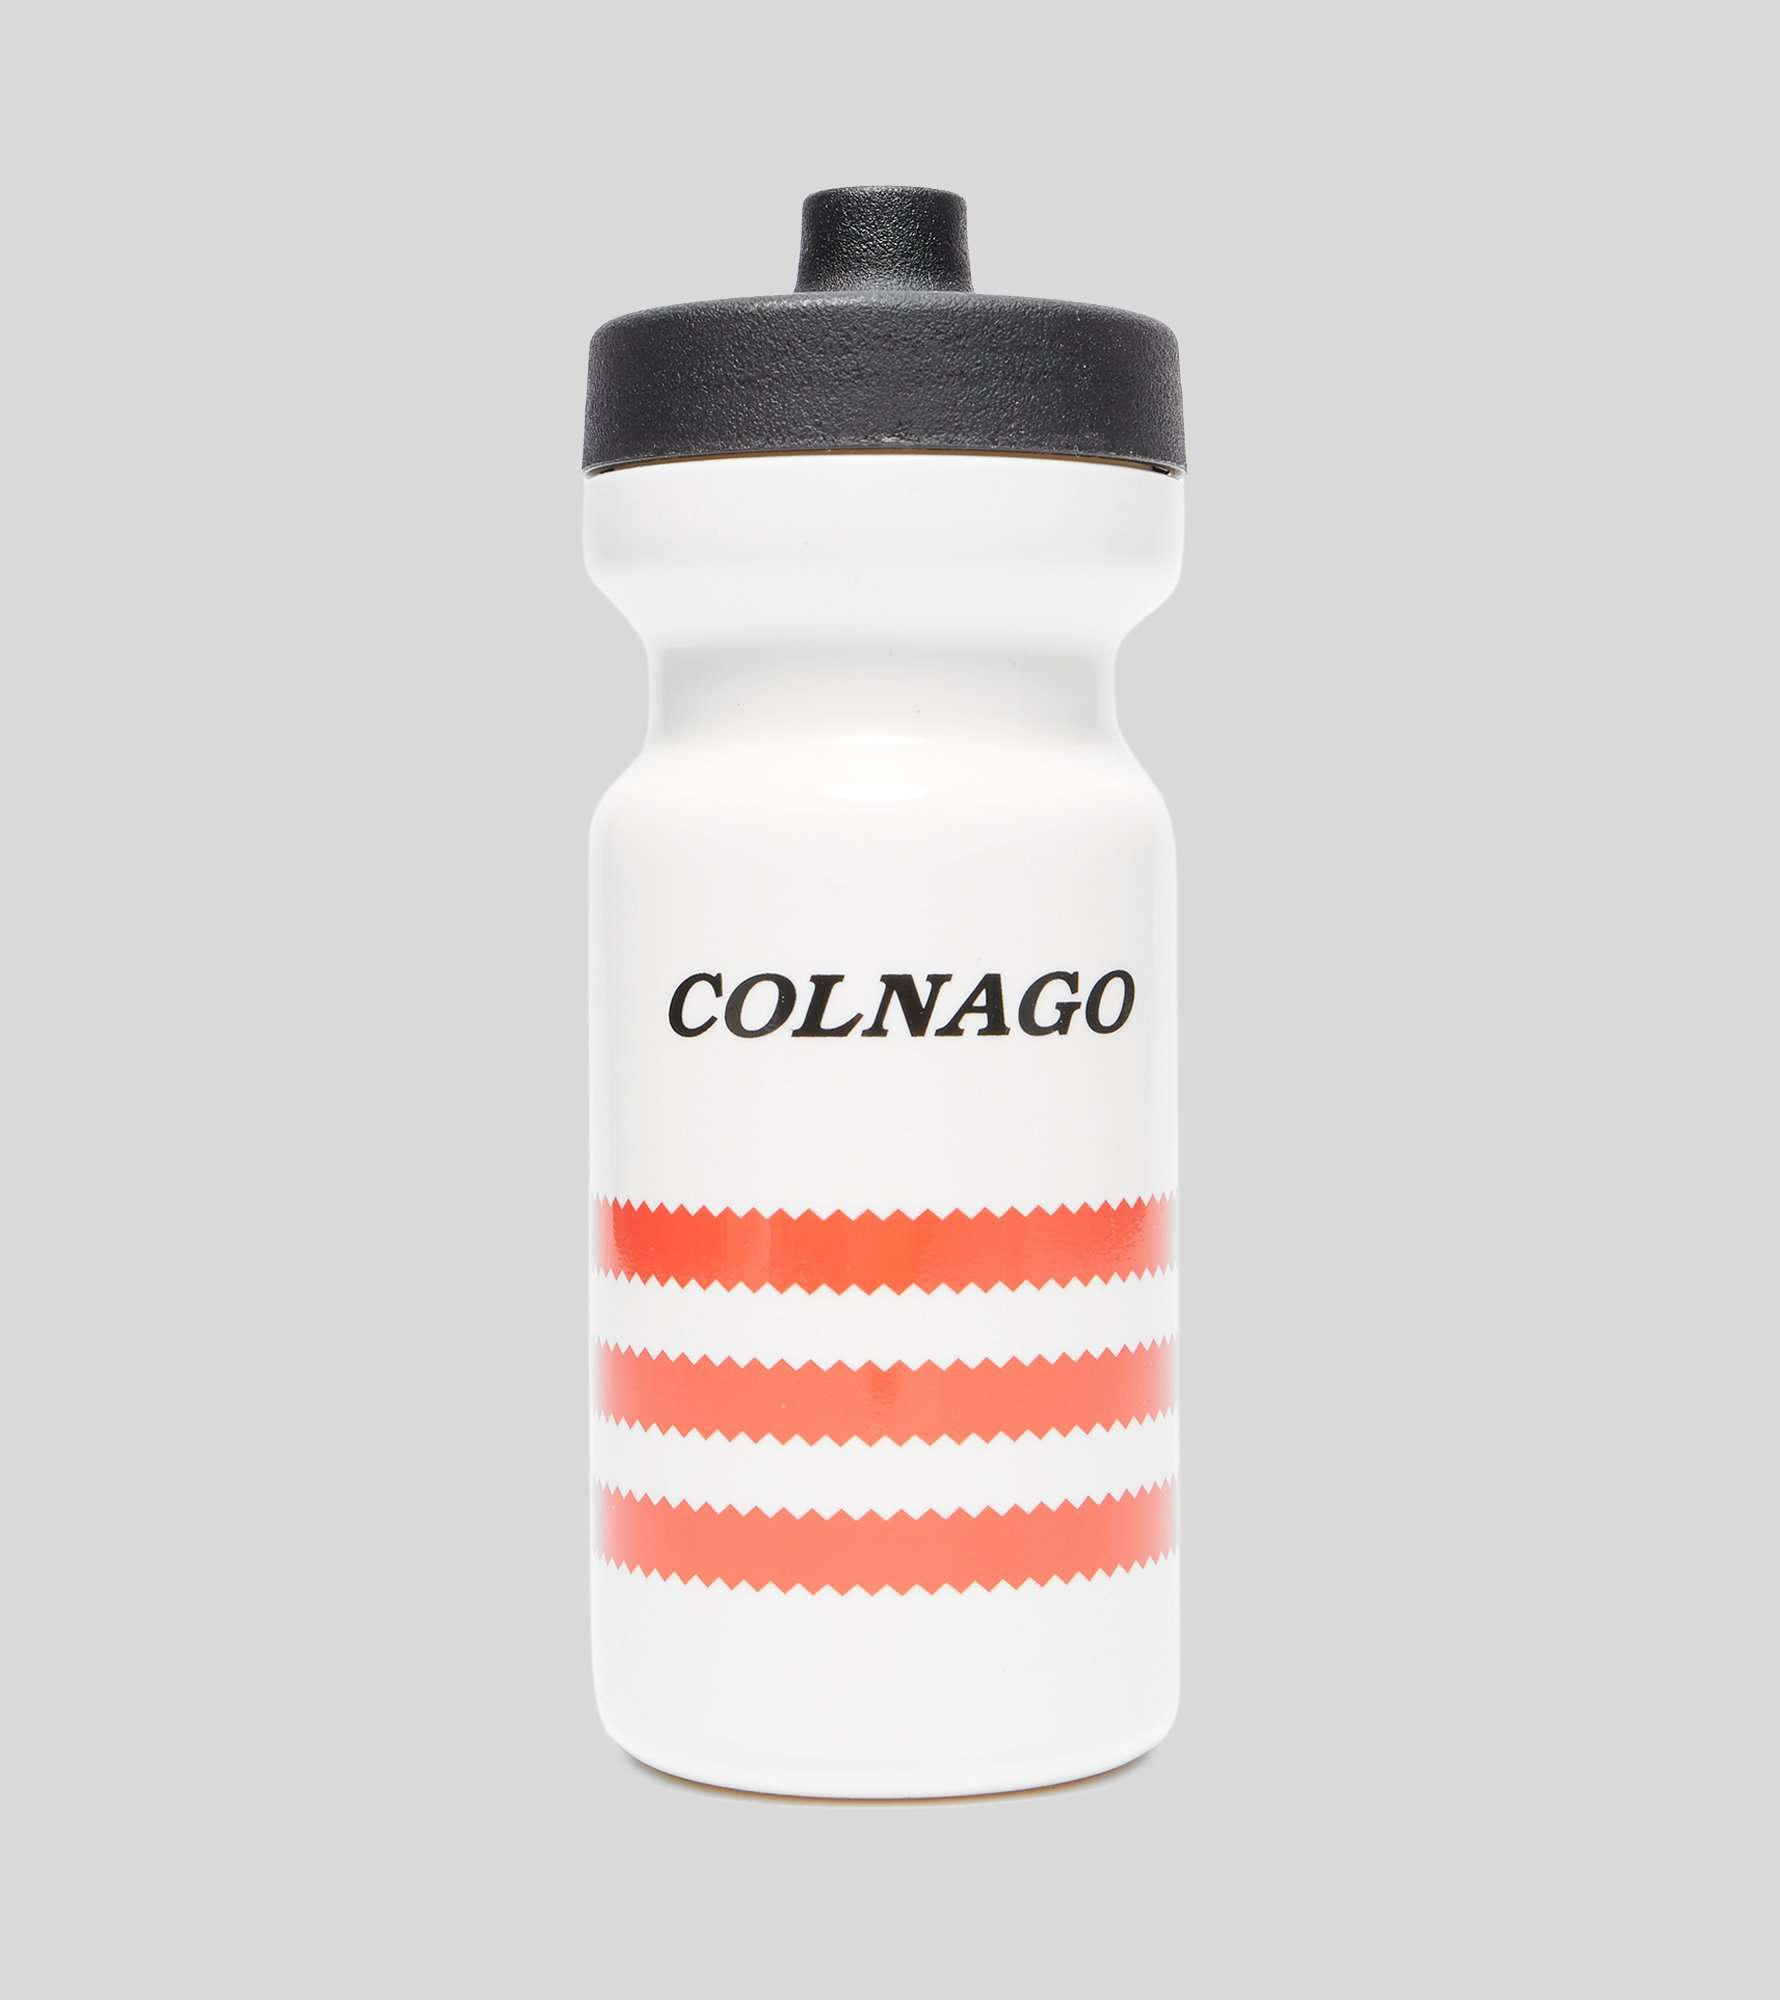 adidas Originals x Colnago Classic Accessories Pack